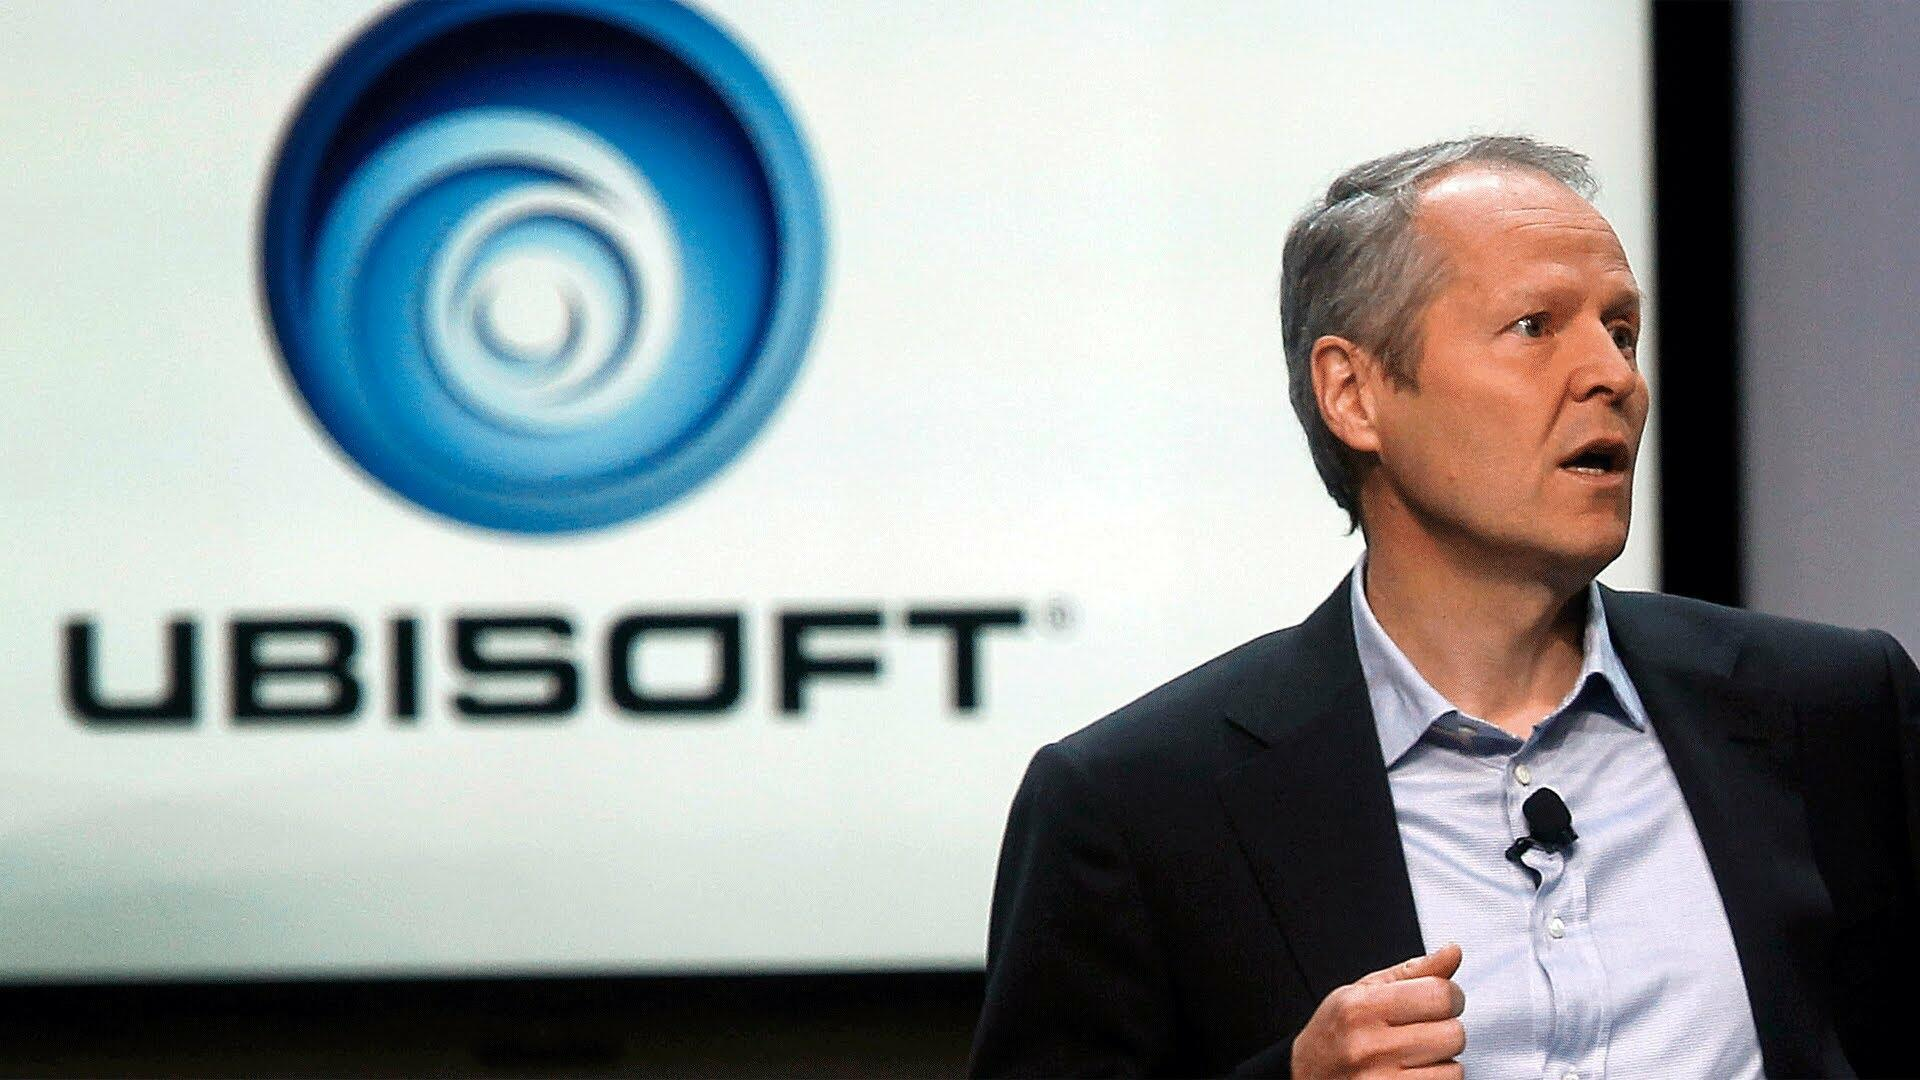 Ubisoft CEO: Next-Gen Consoles May be the Last